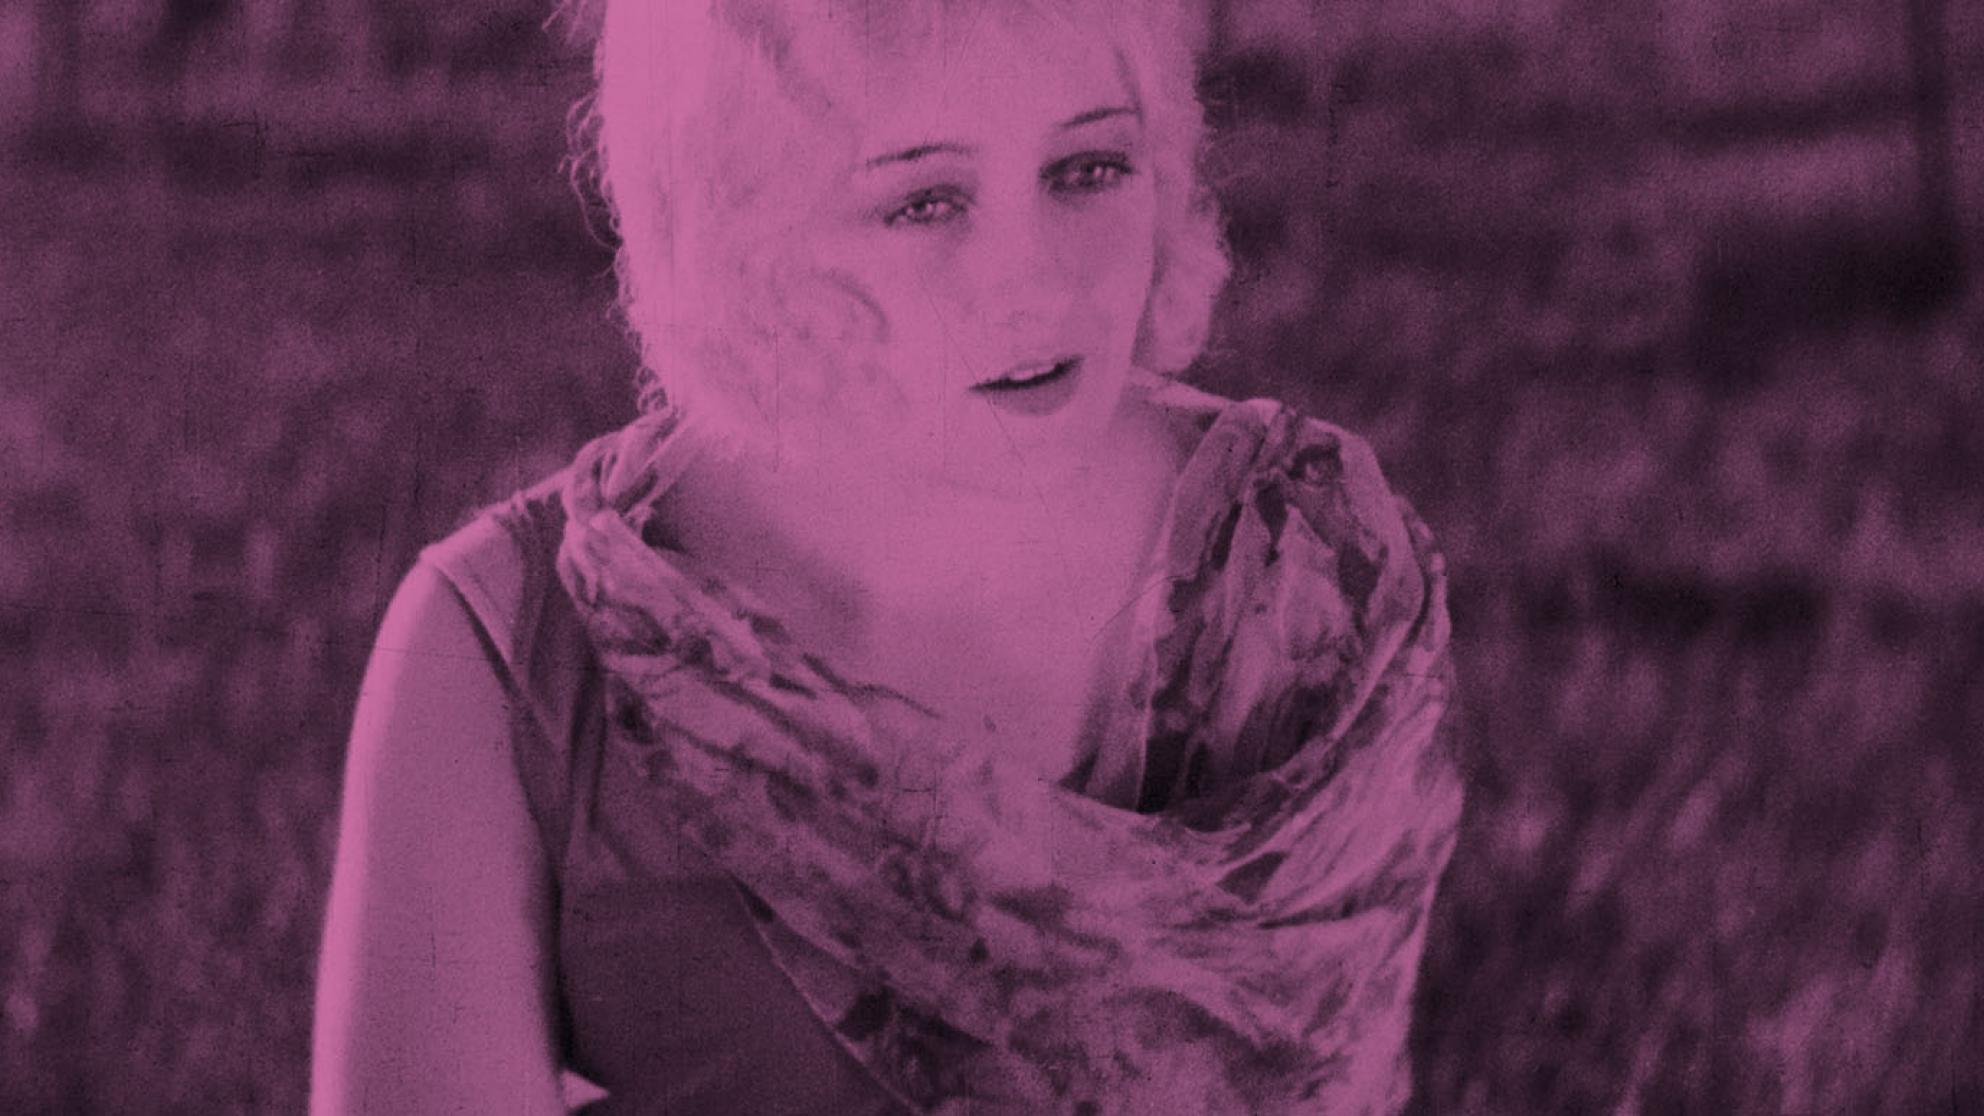 A rose-pink tinted image of a woman looking off into the distance.